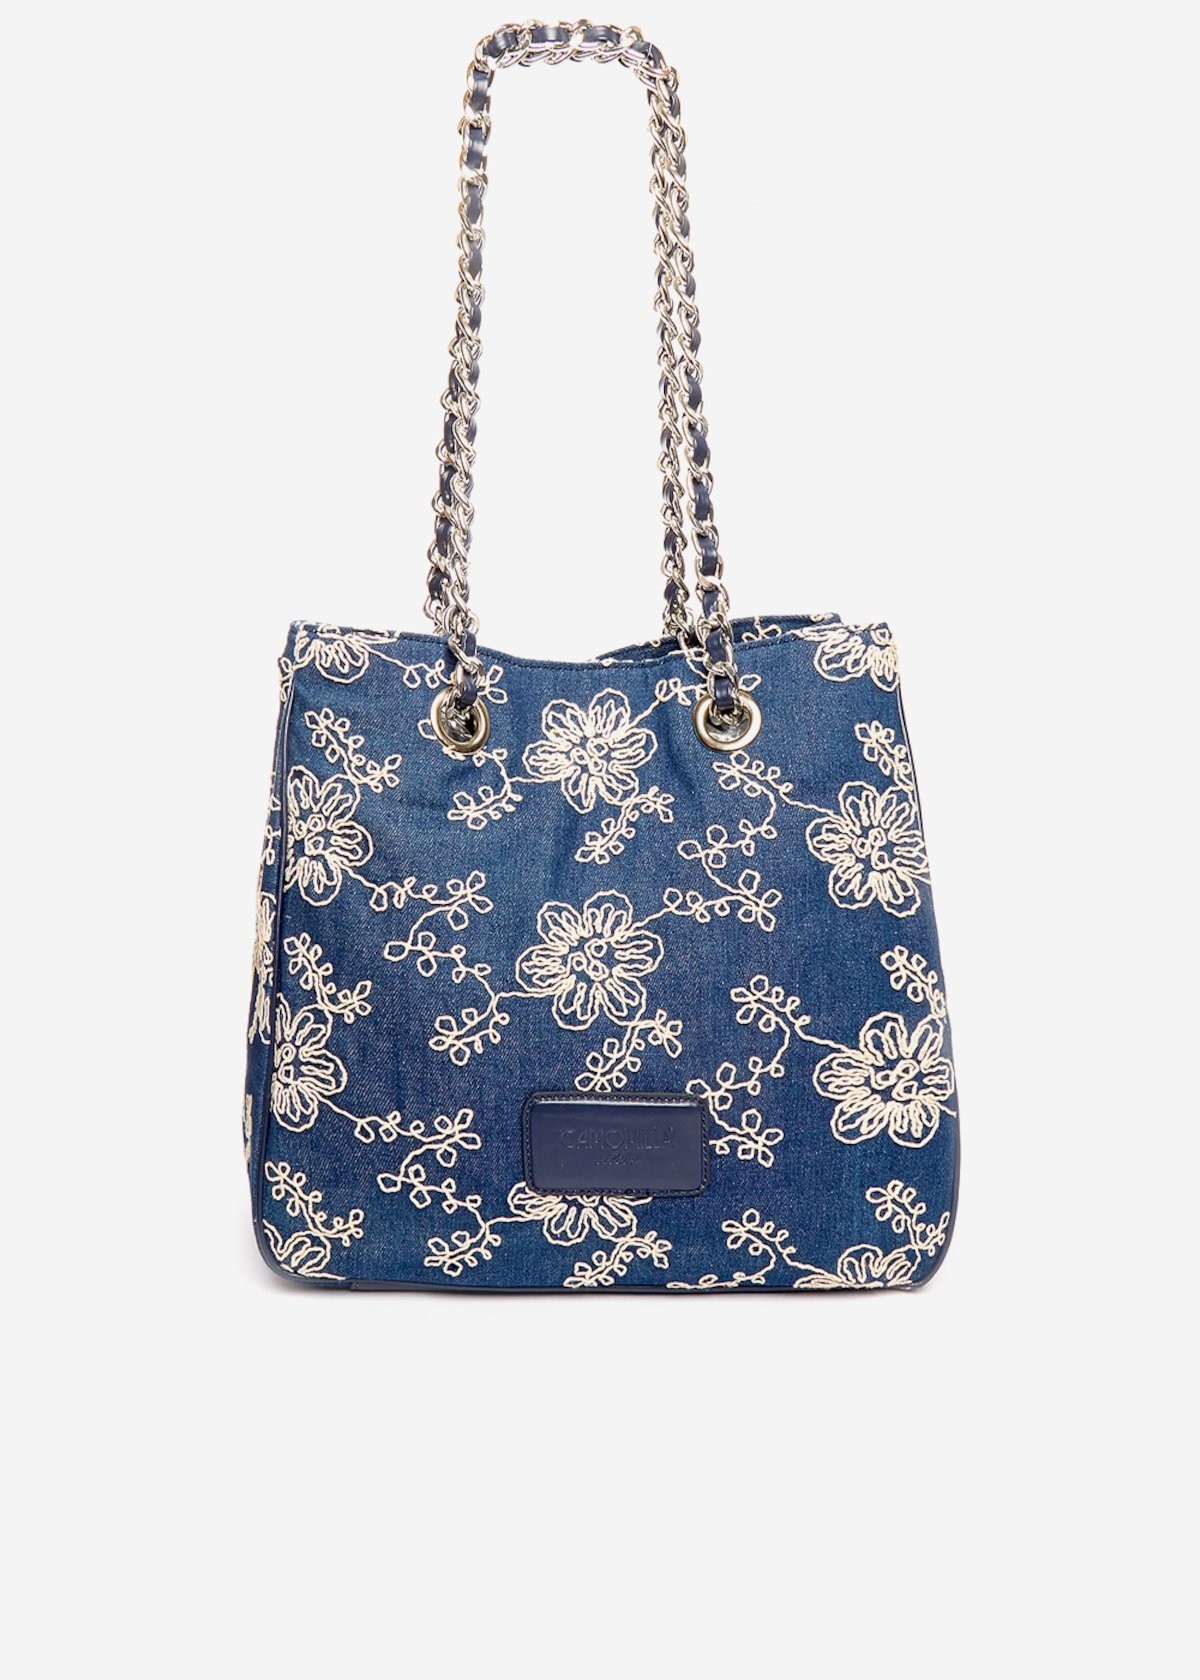 Shopping bag Belta with floral embroidery - Dark Denim